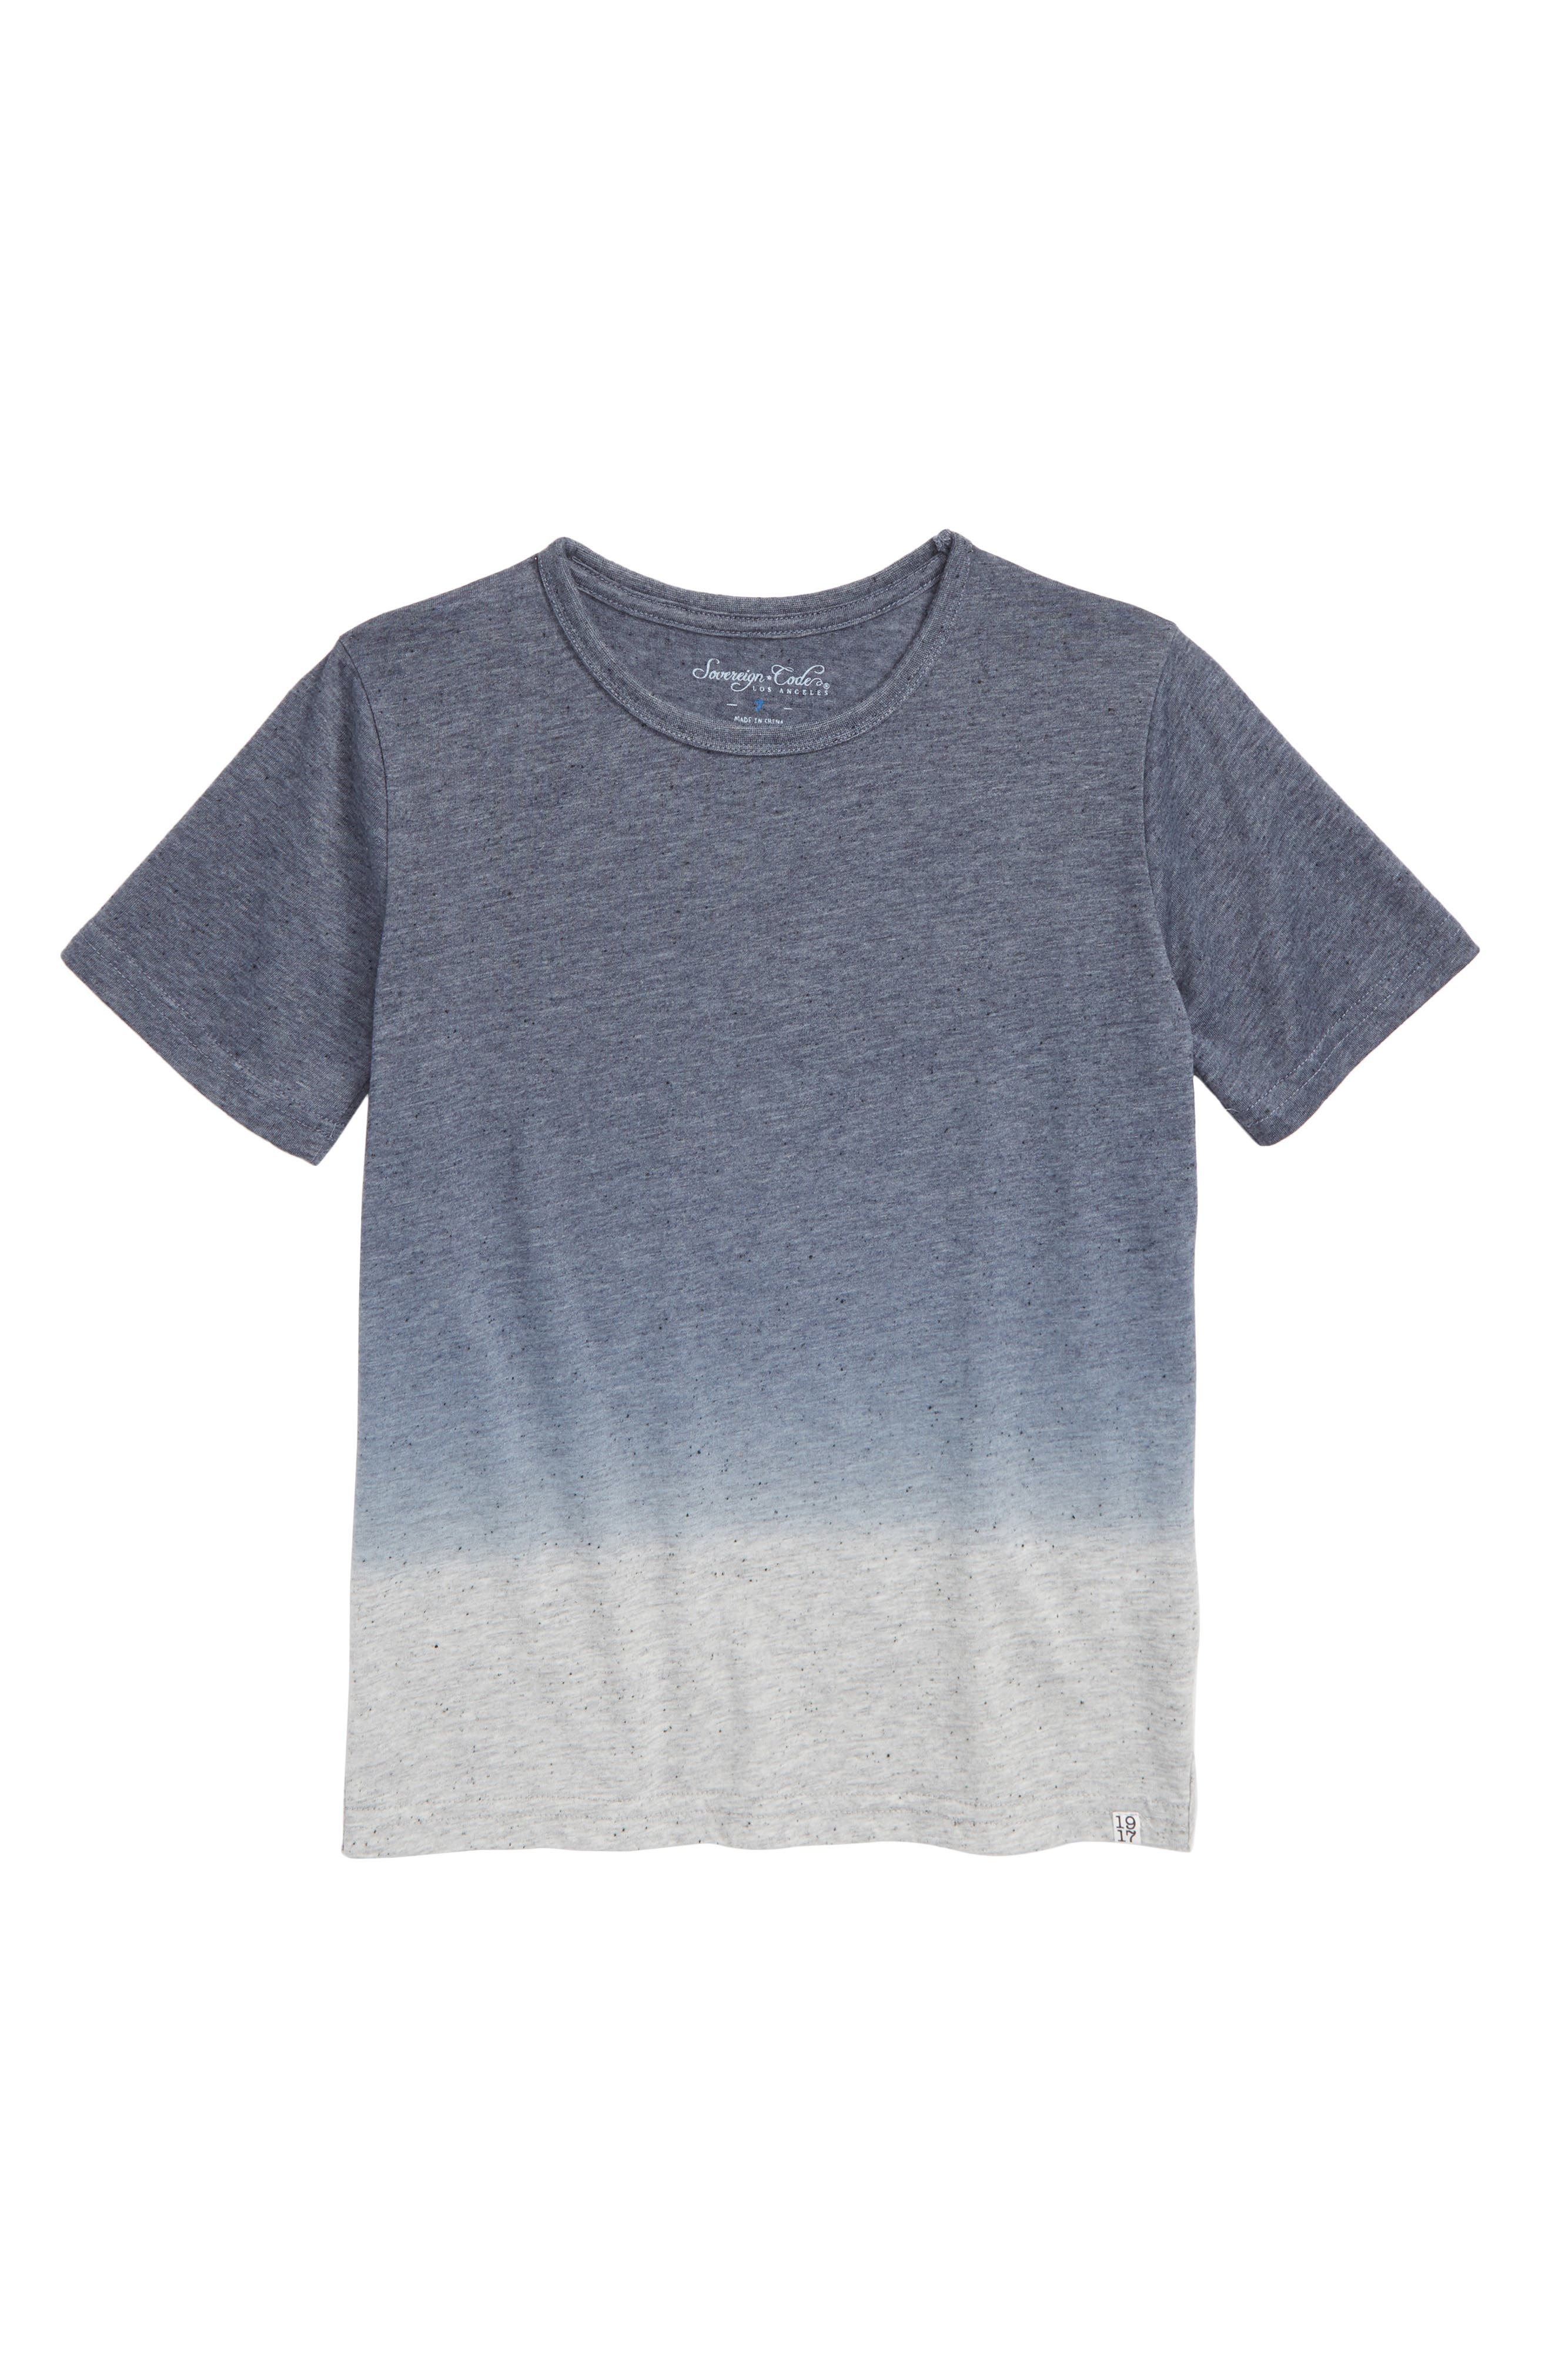 Allister T-Shirt,                         Main,                         color, NAVY HEATHER GREY